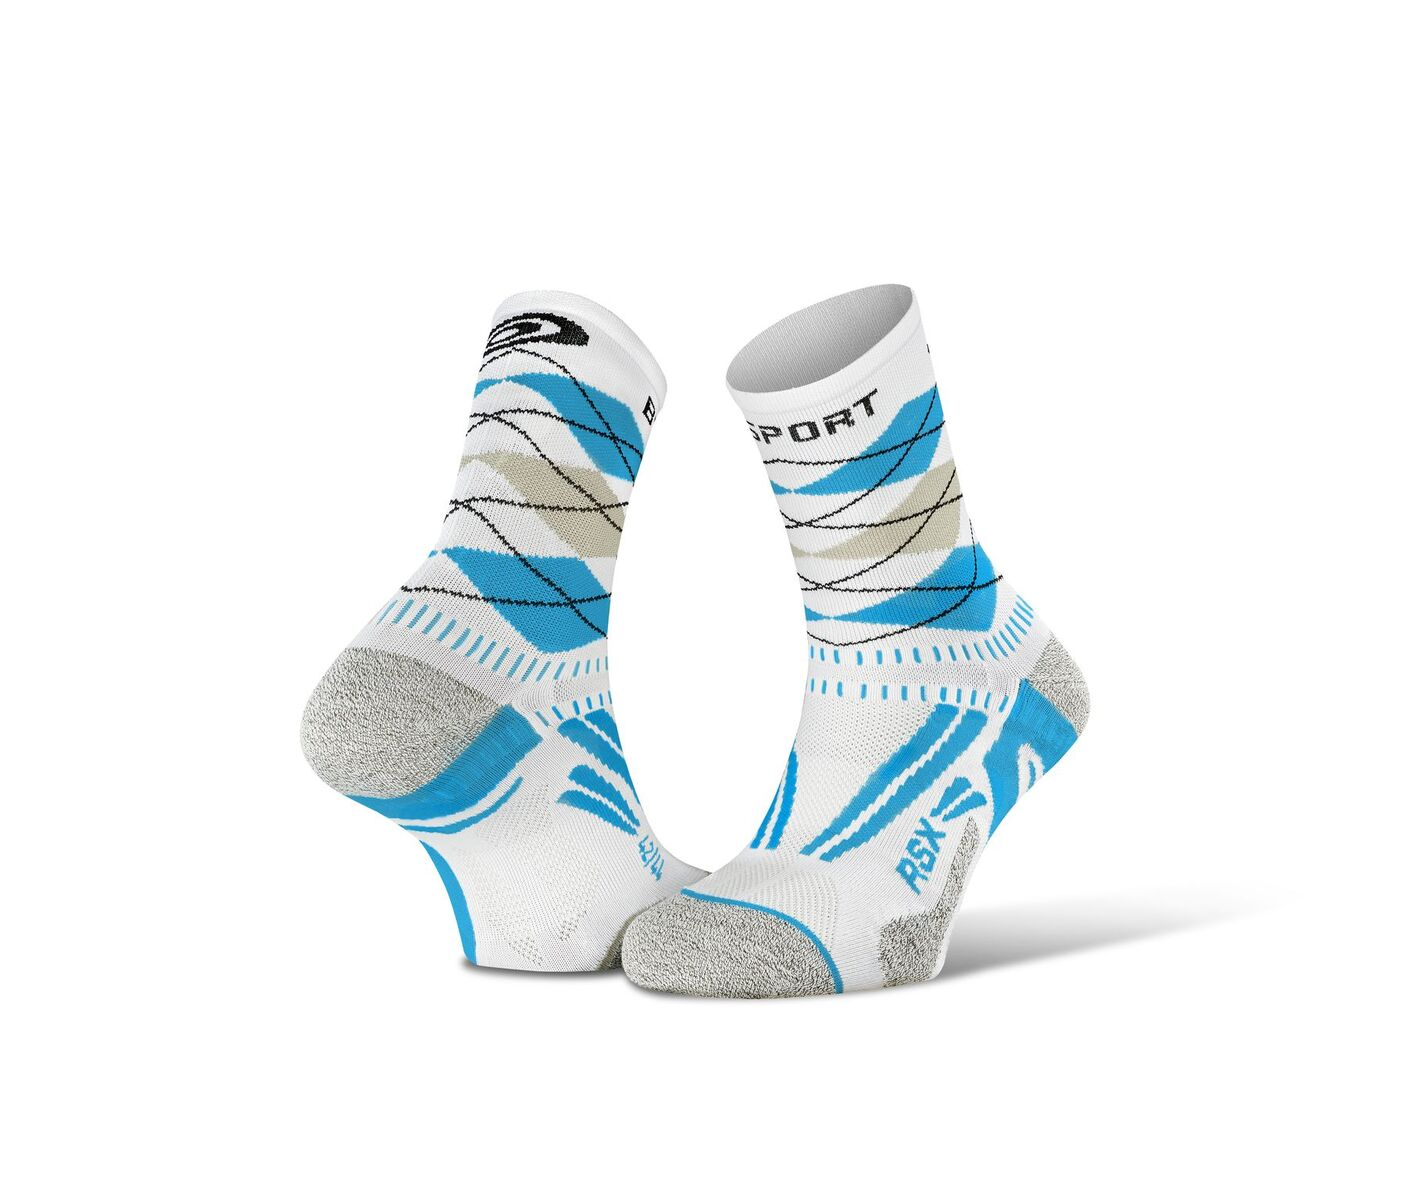 BV SPORT SOCQUETTES RSX EVO BLANCHES ET BLEUES Chaussettes Running BV Sport